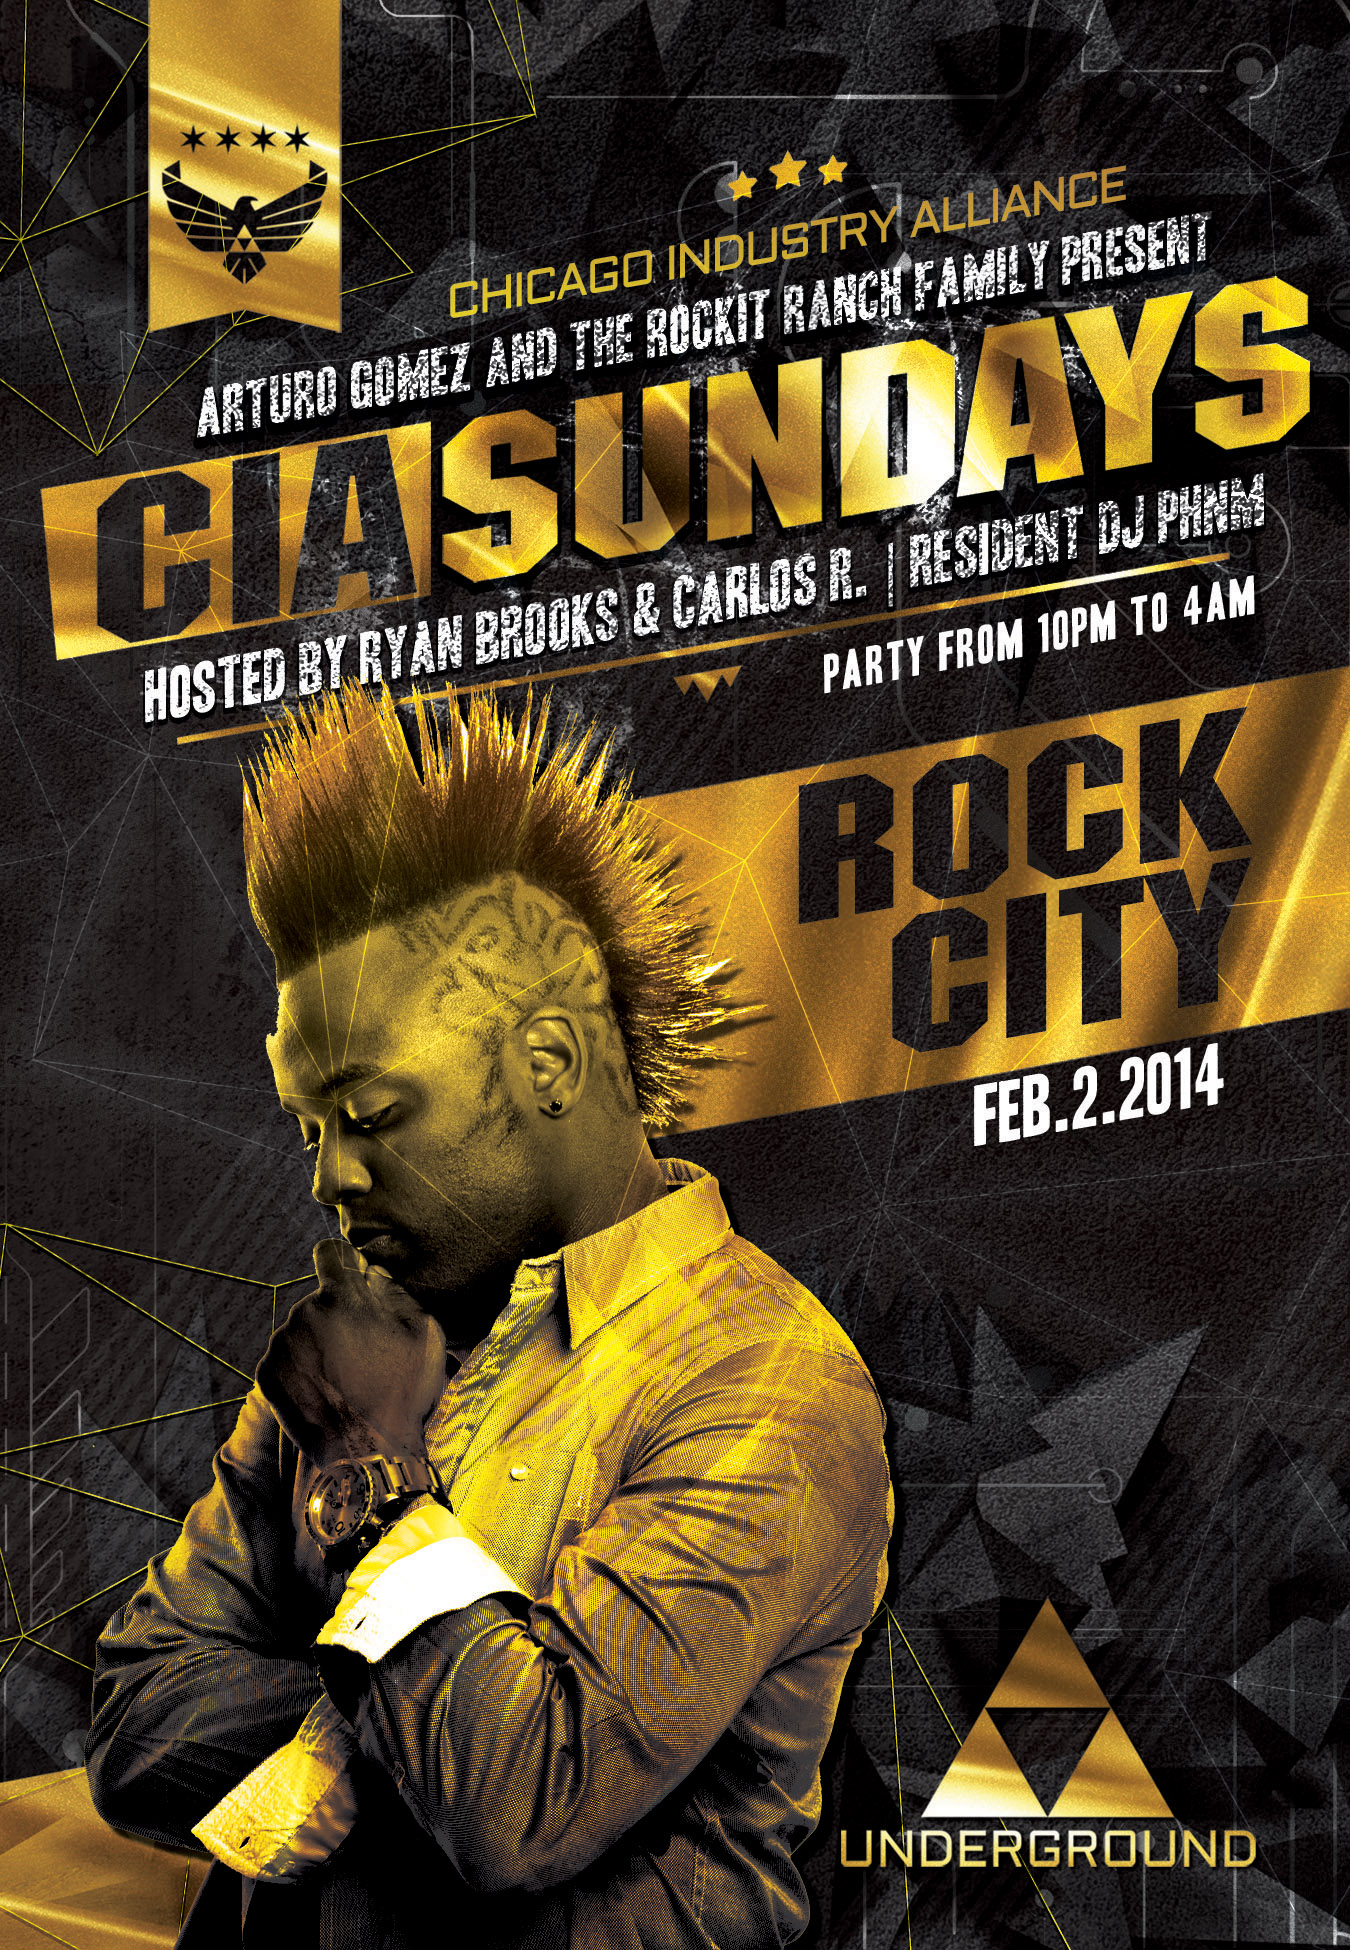 Chicago Industry Alliance with DJ Rock City